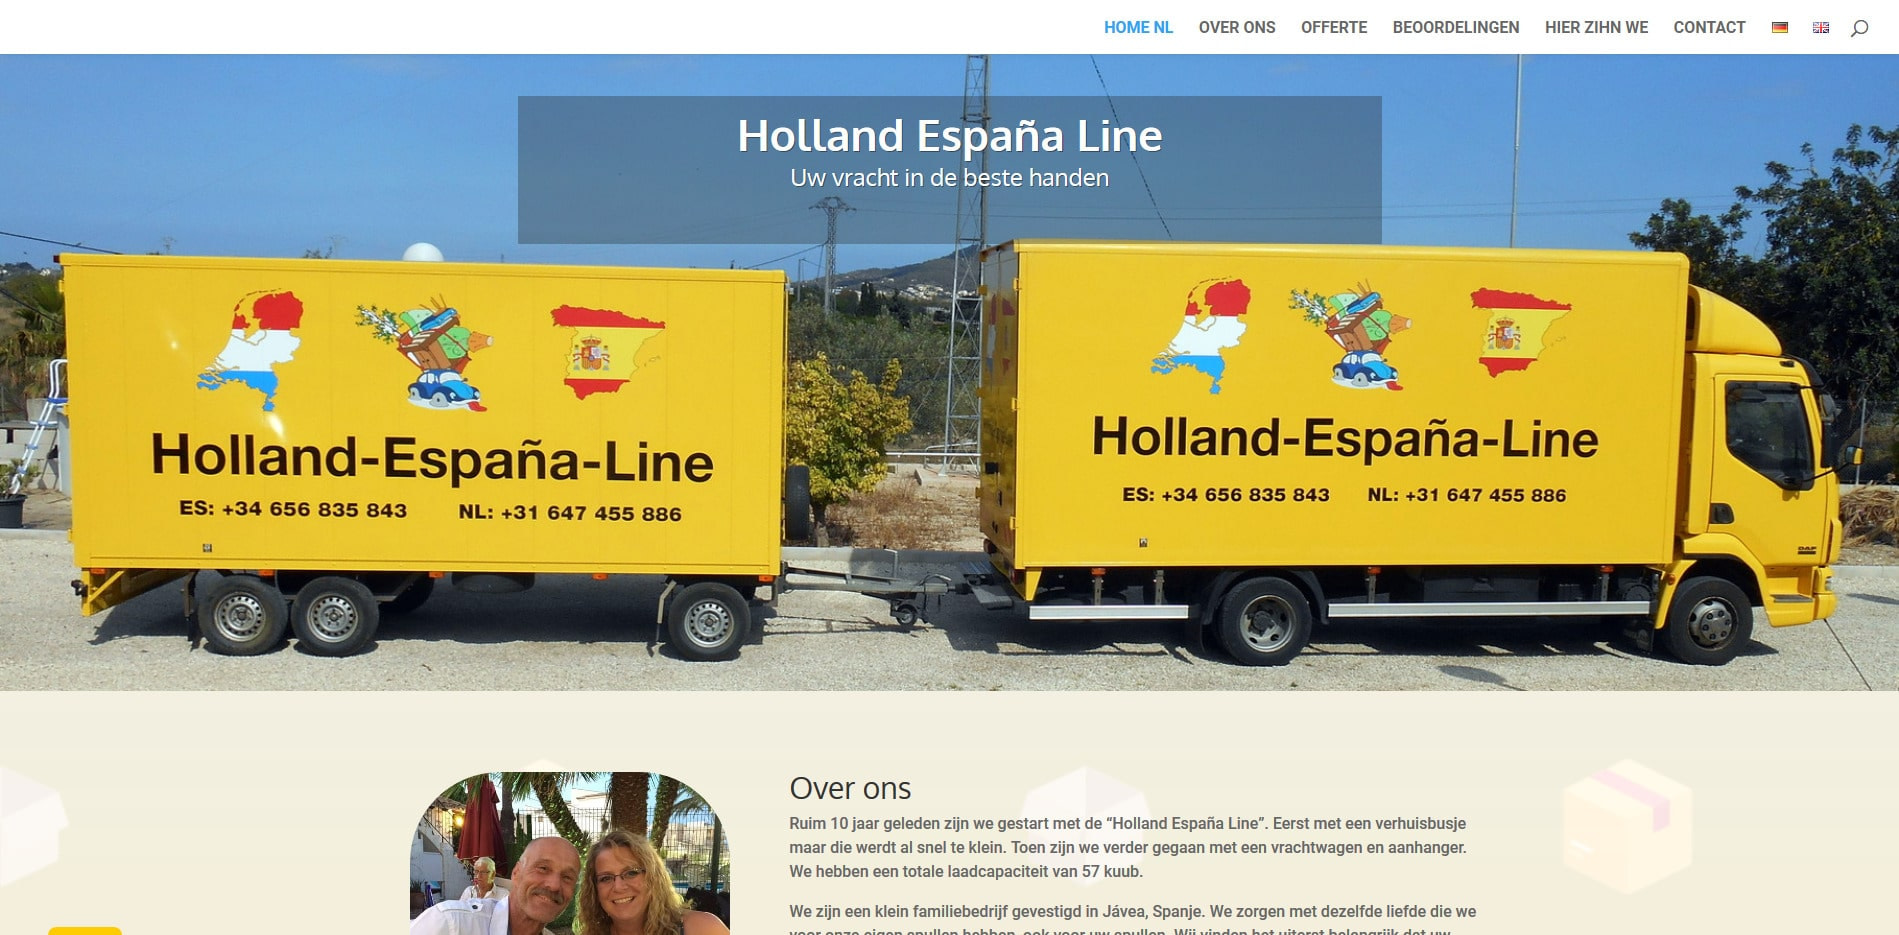 Webseite Holland-Espana-Line